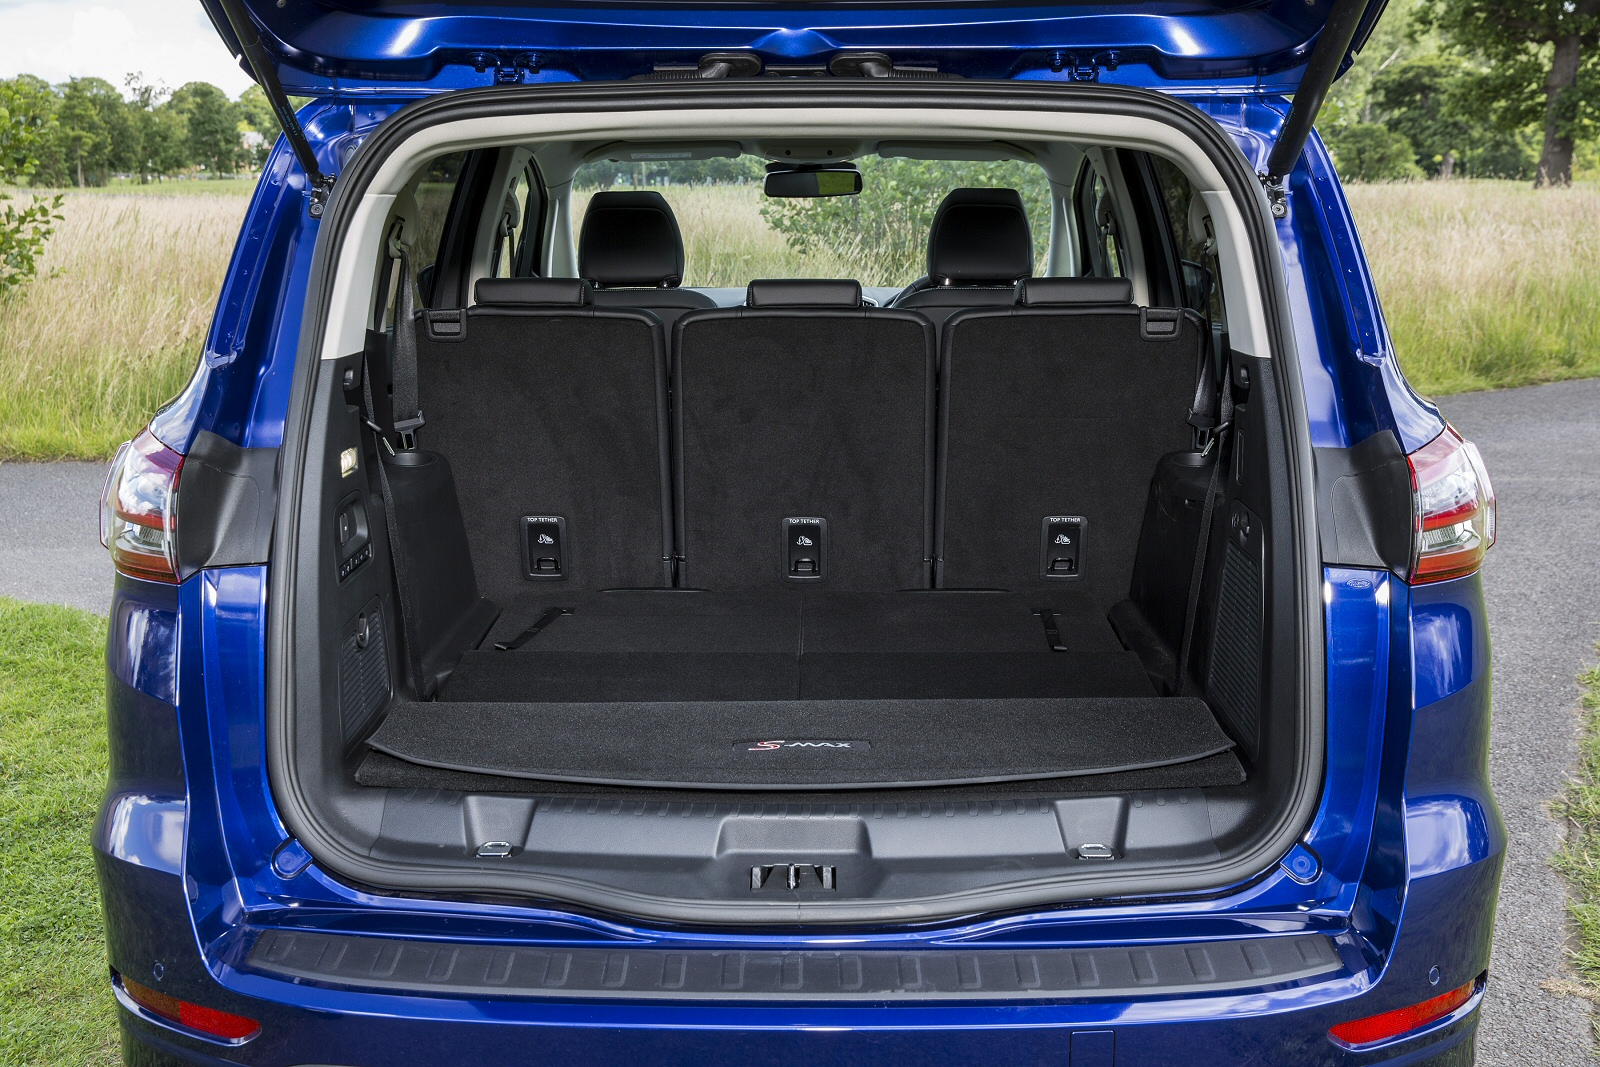 new ford s max 2 0 tdci 150 zetec 5dr diesel estate for. Black Bedroom Furniture Sets. Home Design Ideas